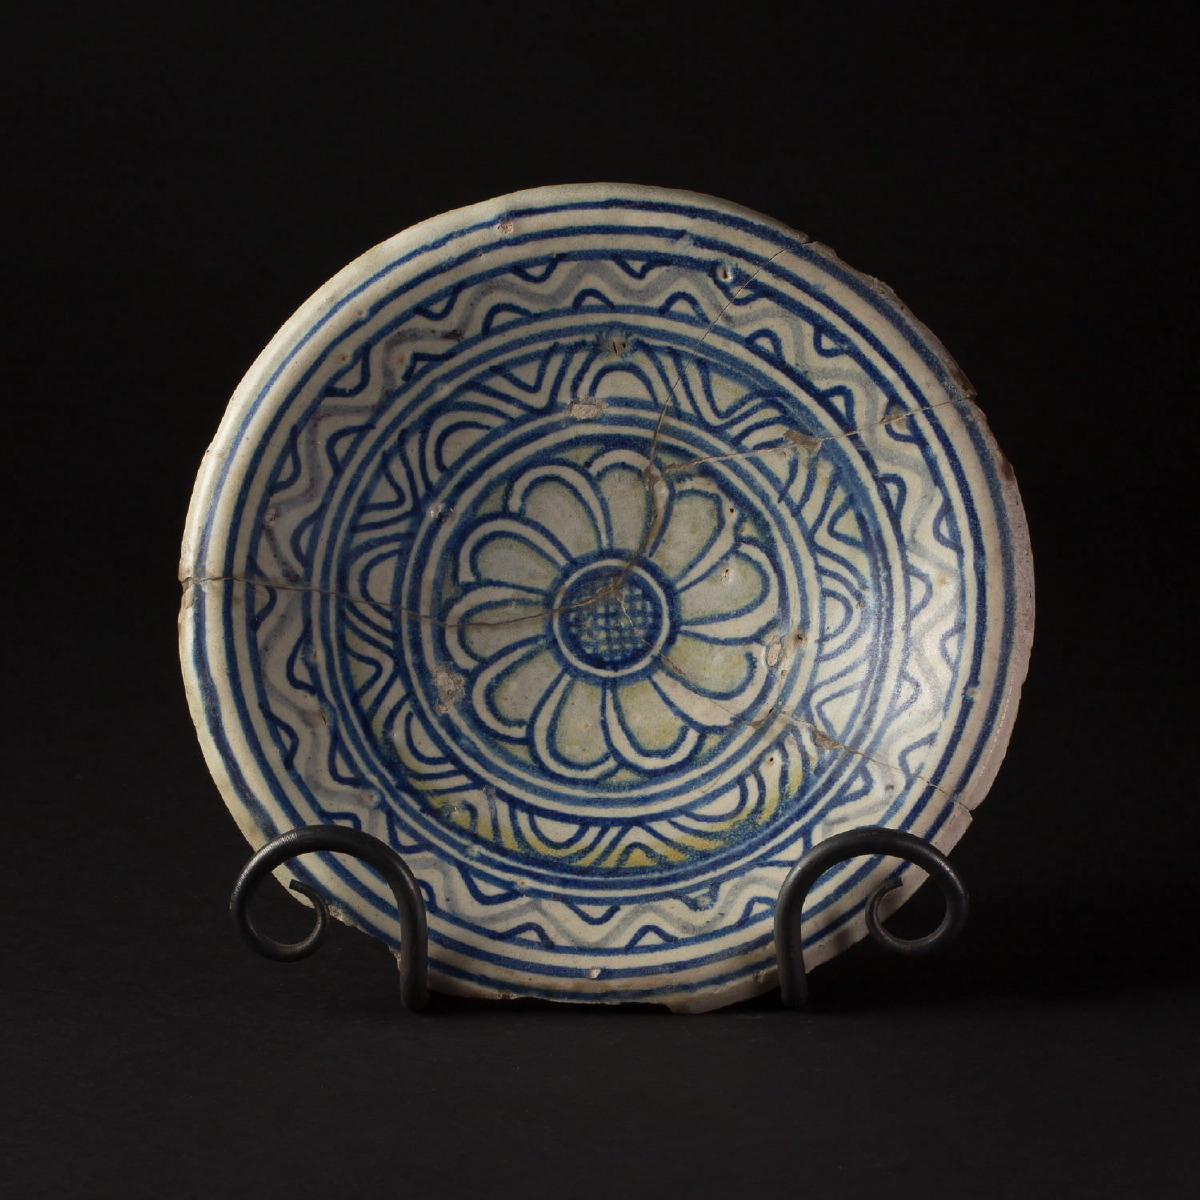 Photo of maiolica-plate-1550-renaissance-collection-van-achterbergh-galerie-golconda